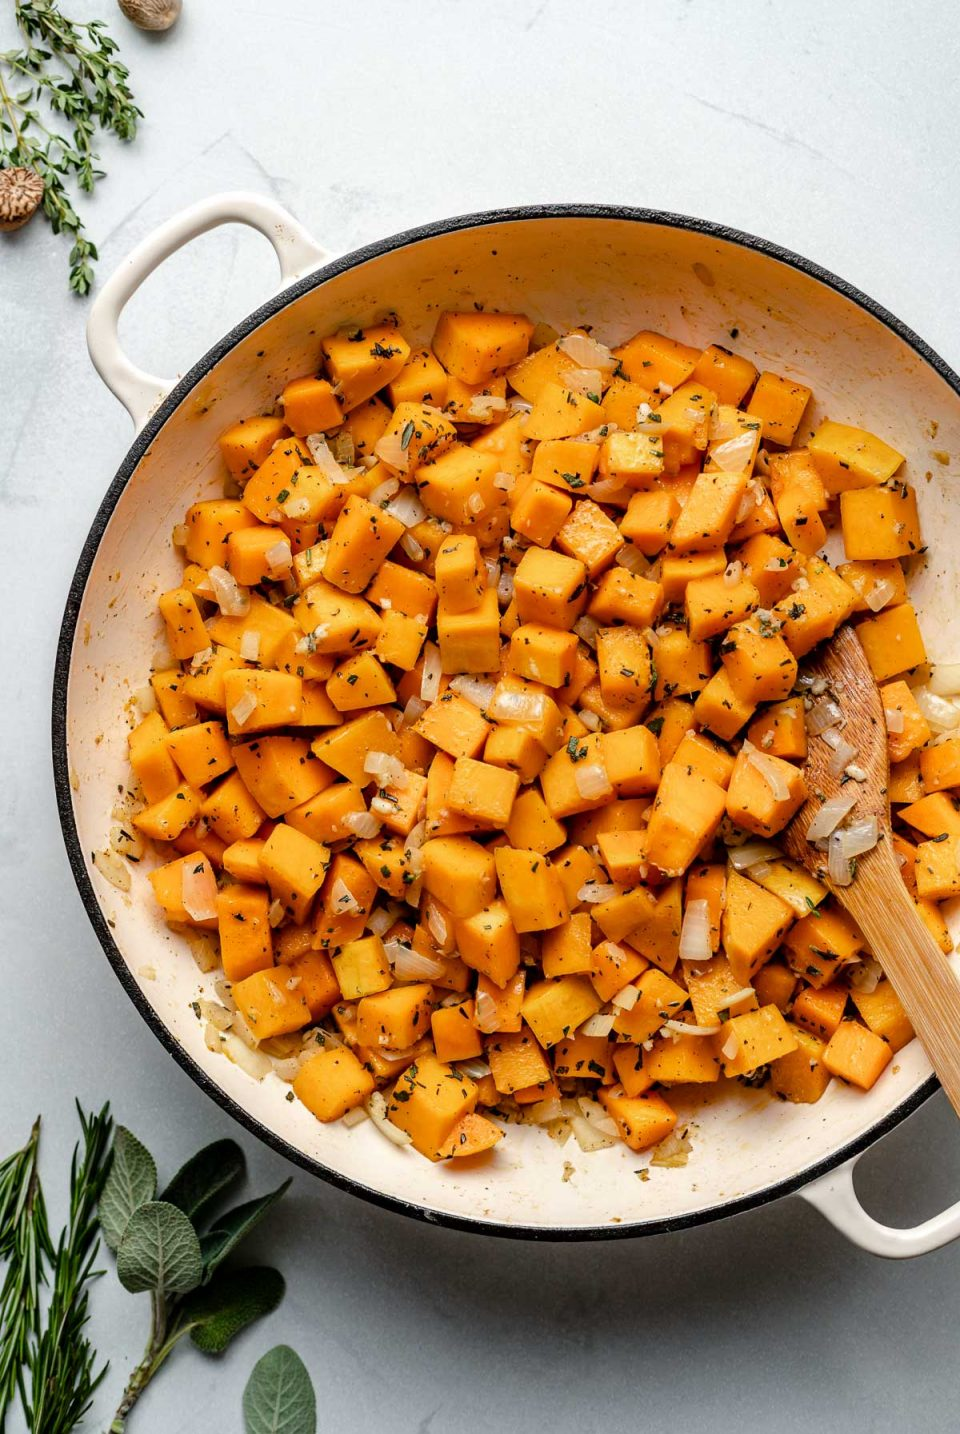 Sauteeing butternut squash in a large skillet with onion, sage, & garlic. A wooden spoon is nestled into the squash. The skillet sits atop a light blue surface, next to fresh herbs & whole nutmeg.